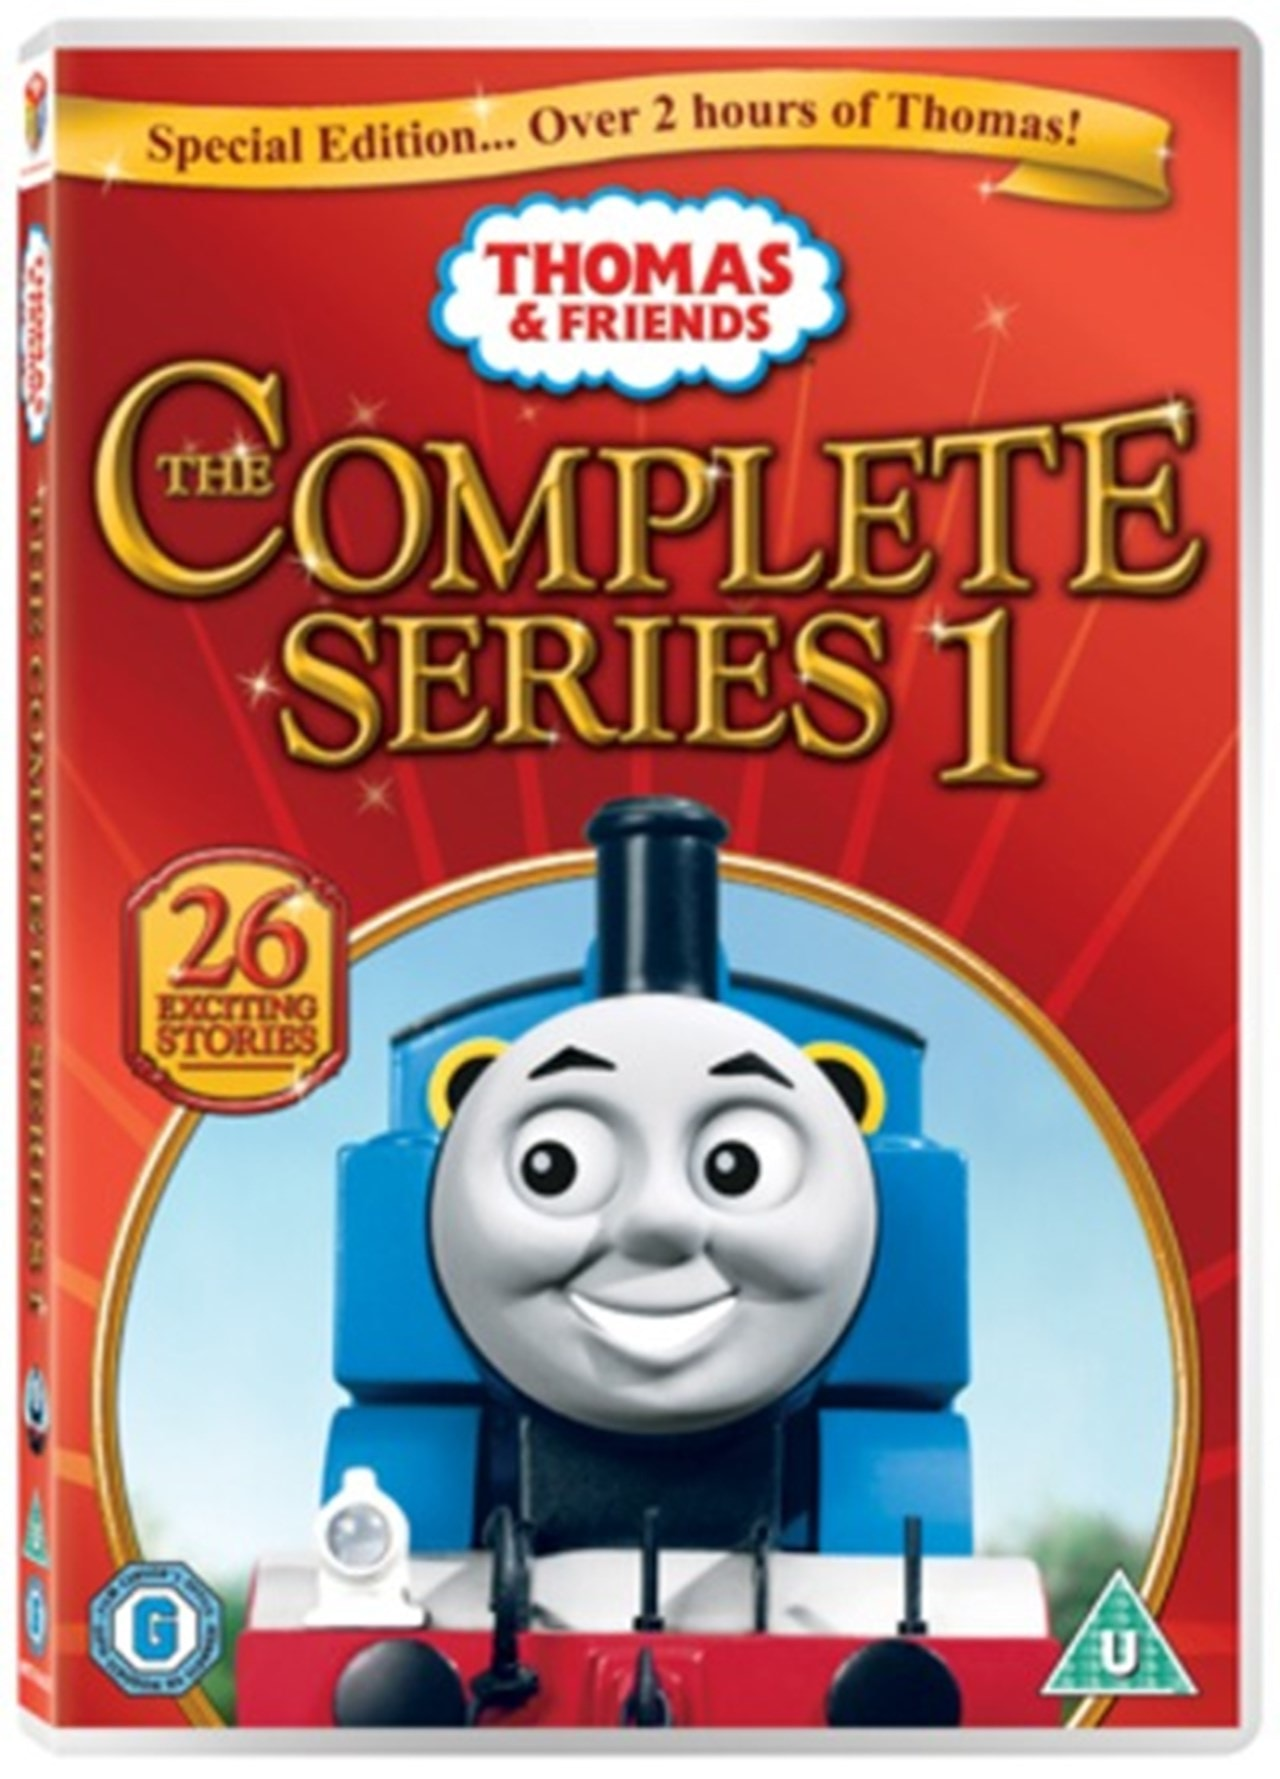 Thomas & Friends: The Complete Series 1 - 1